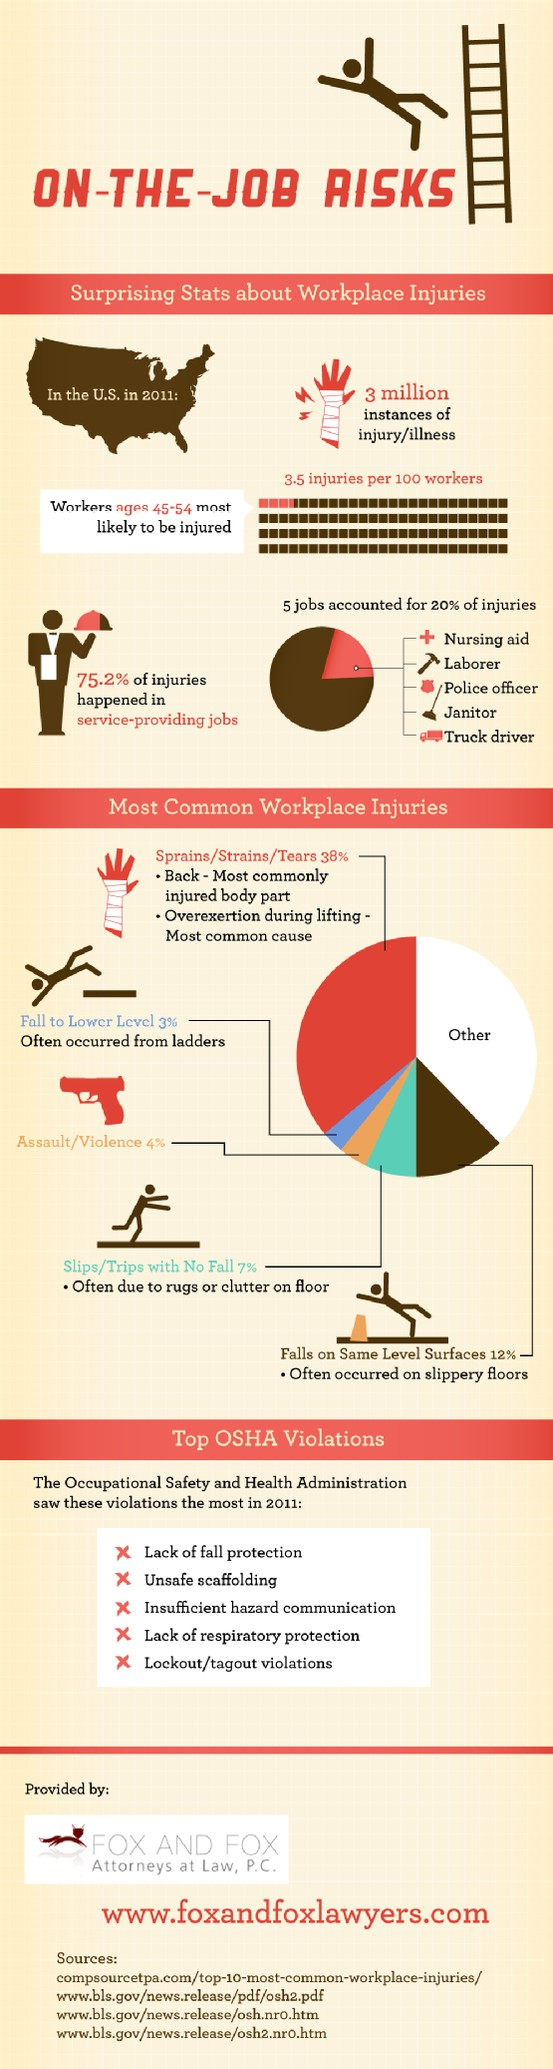 Did You Know That Sprains Strains And Tears Were The Most Common Types Of Workplace Injuries I Workplace Injury Personal Injury Personal Injury Law